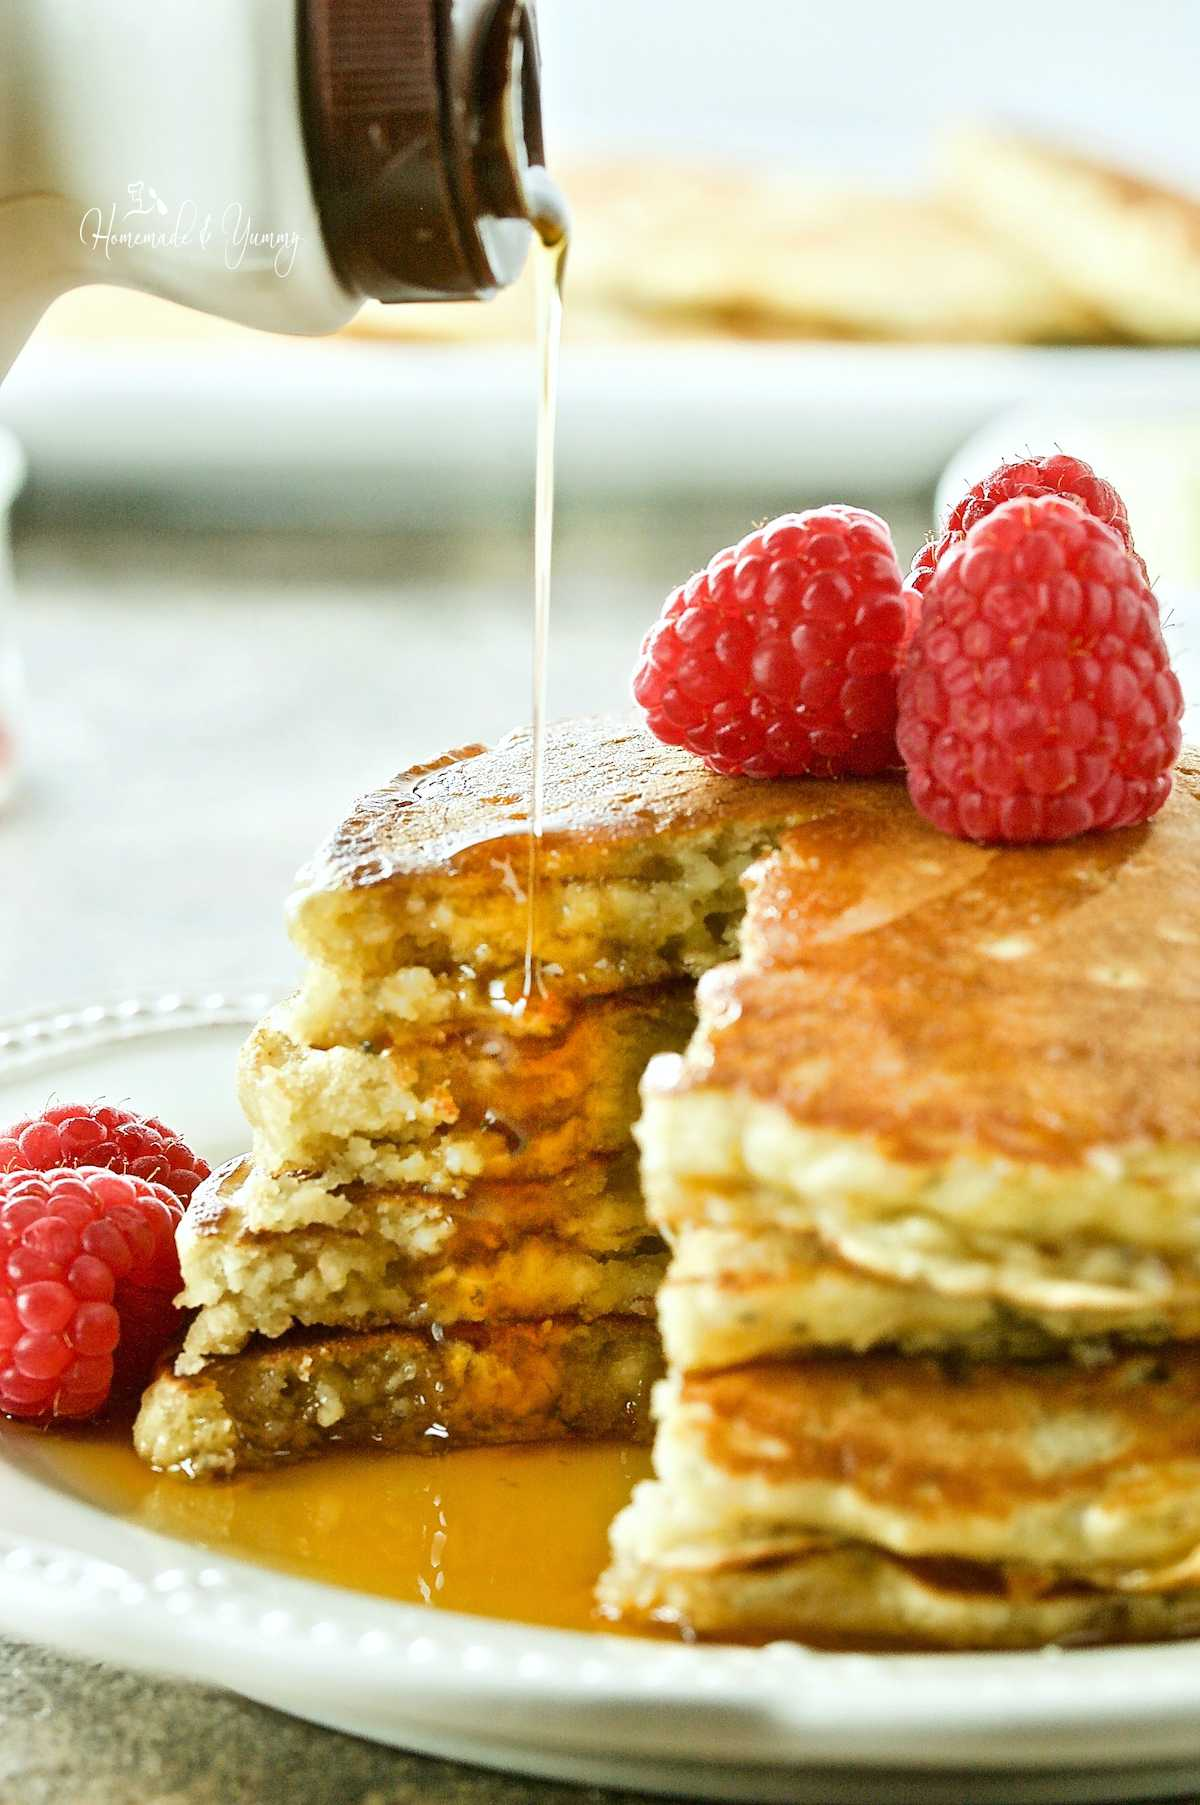 Syrup getting poured over a stack of oatmeal pancakes, topped with raspberries.